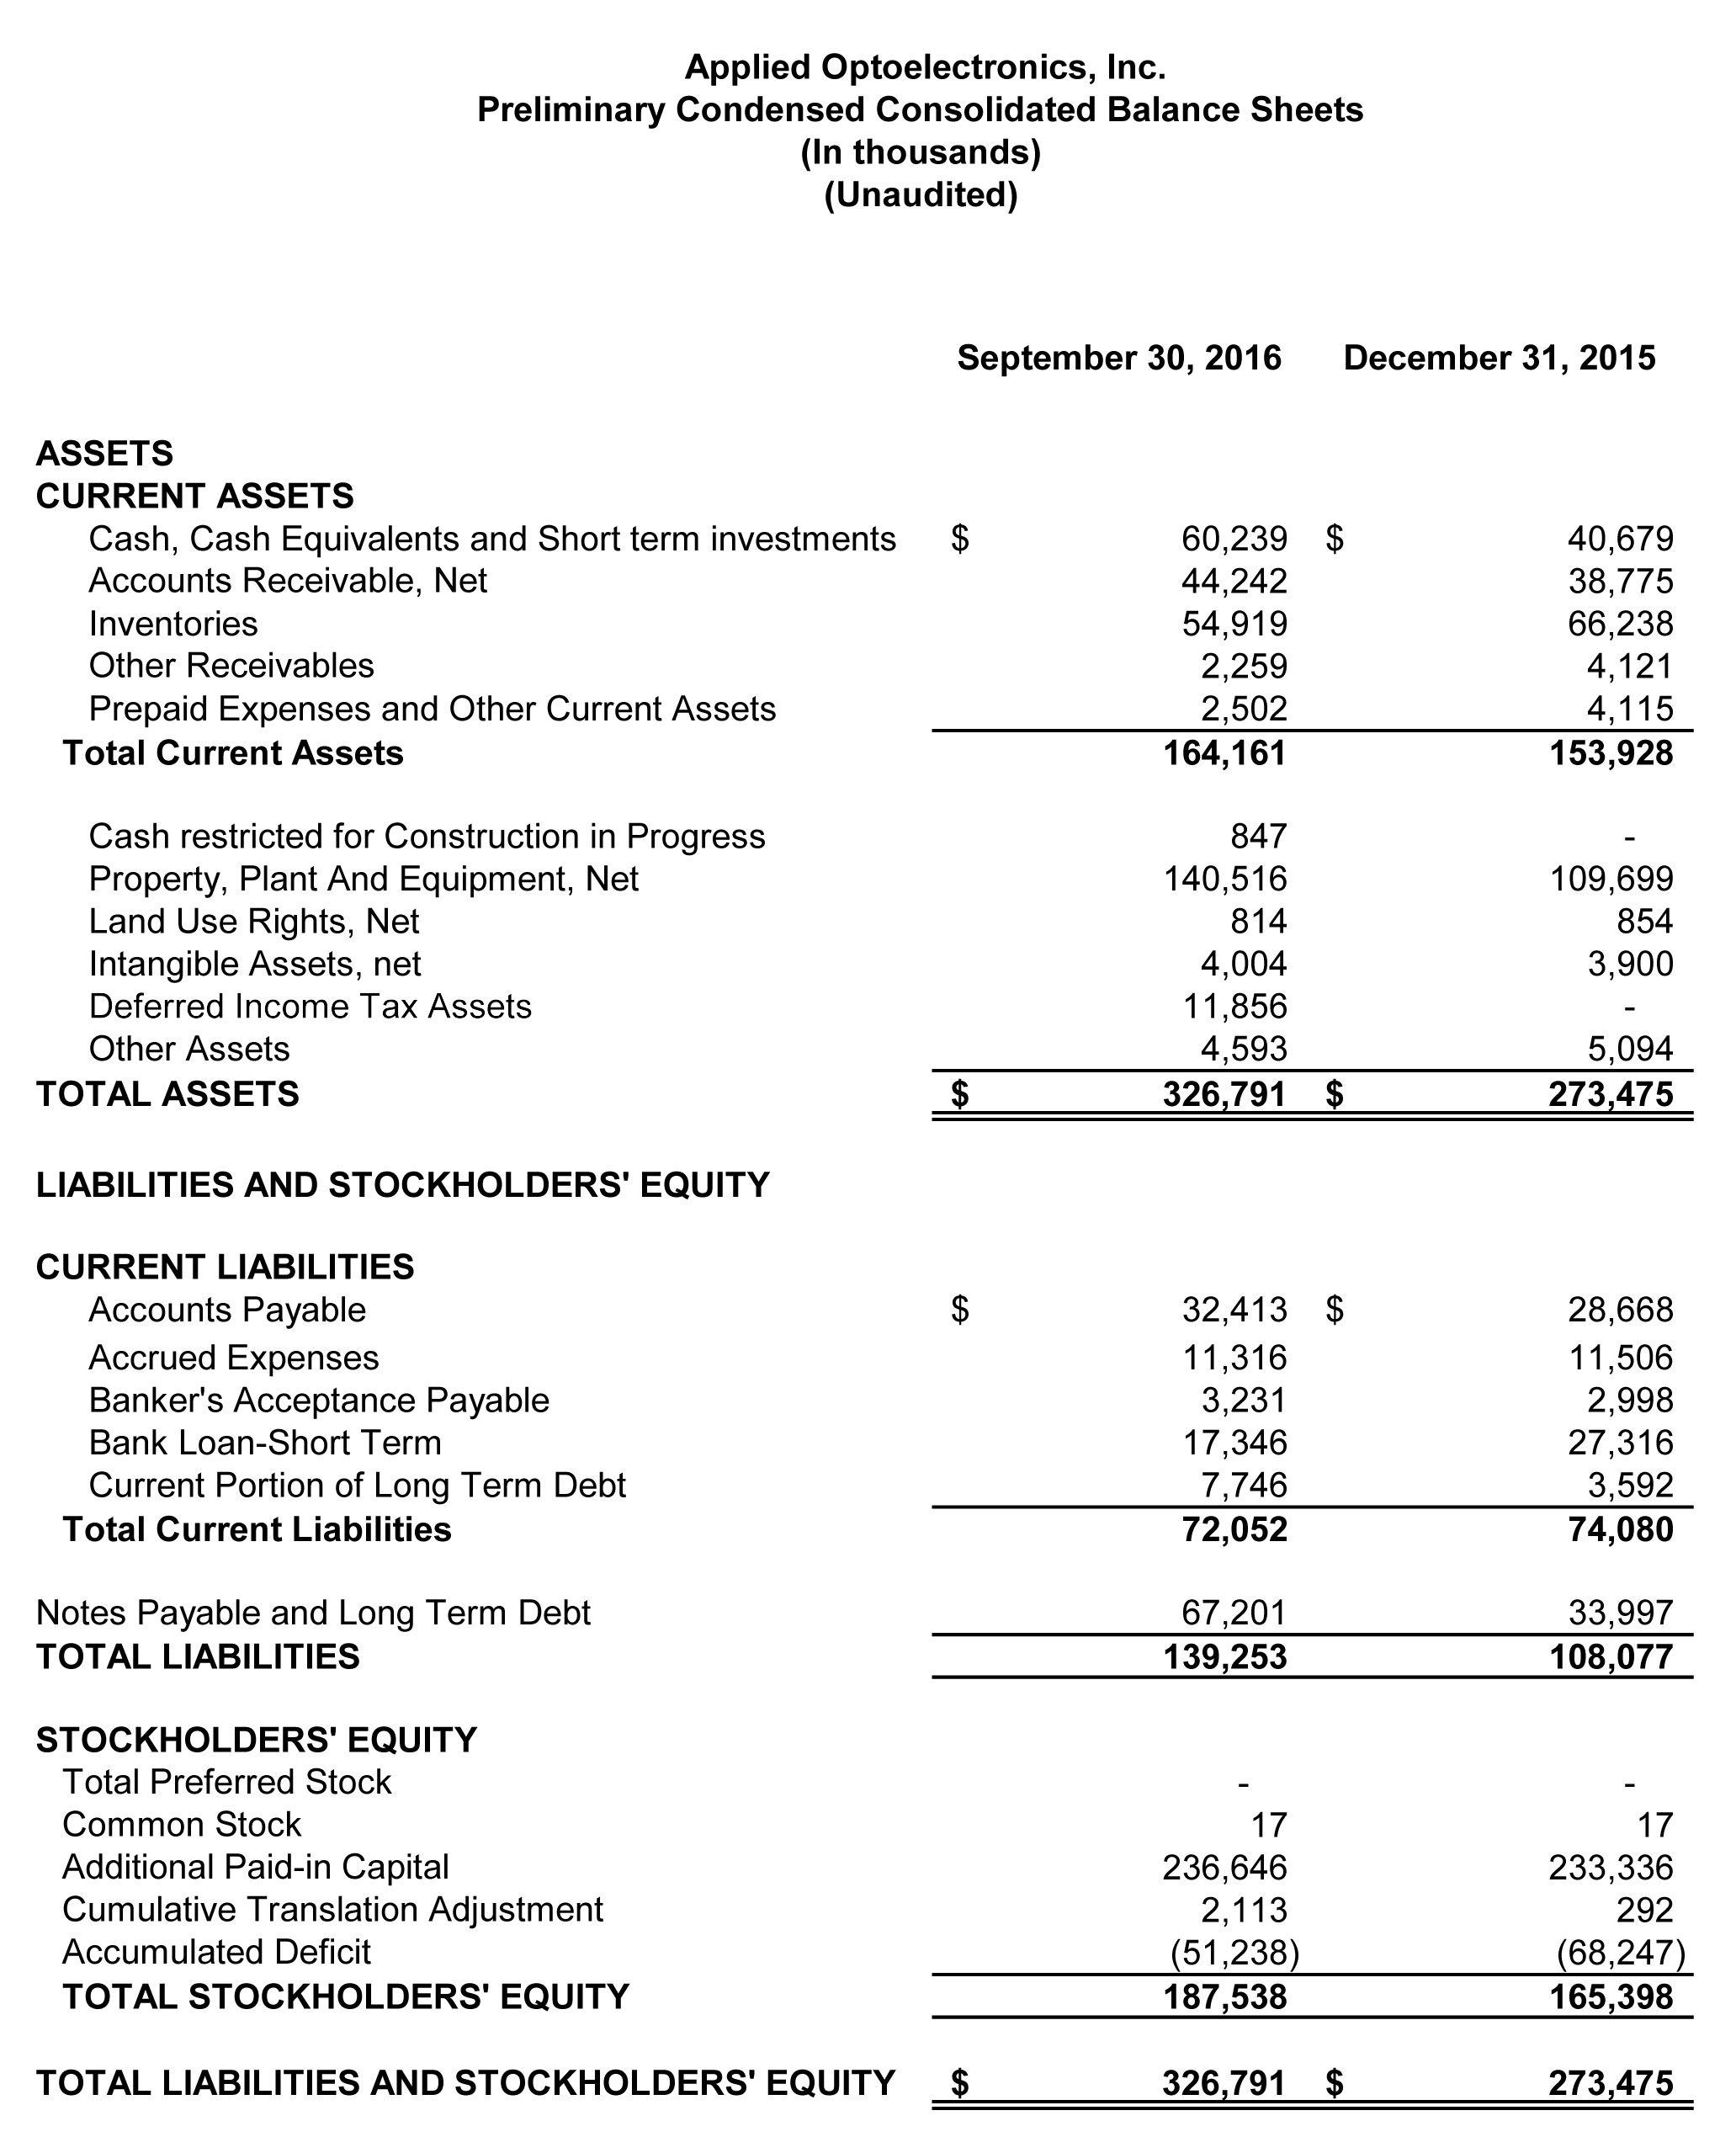 Preliminary Condensed Consolidated Balance Sheets